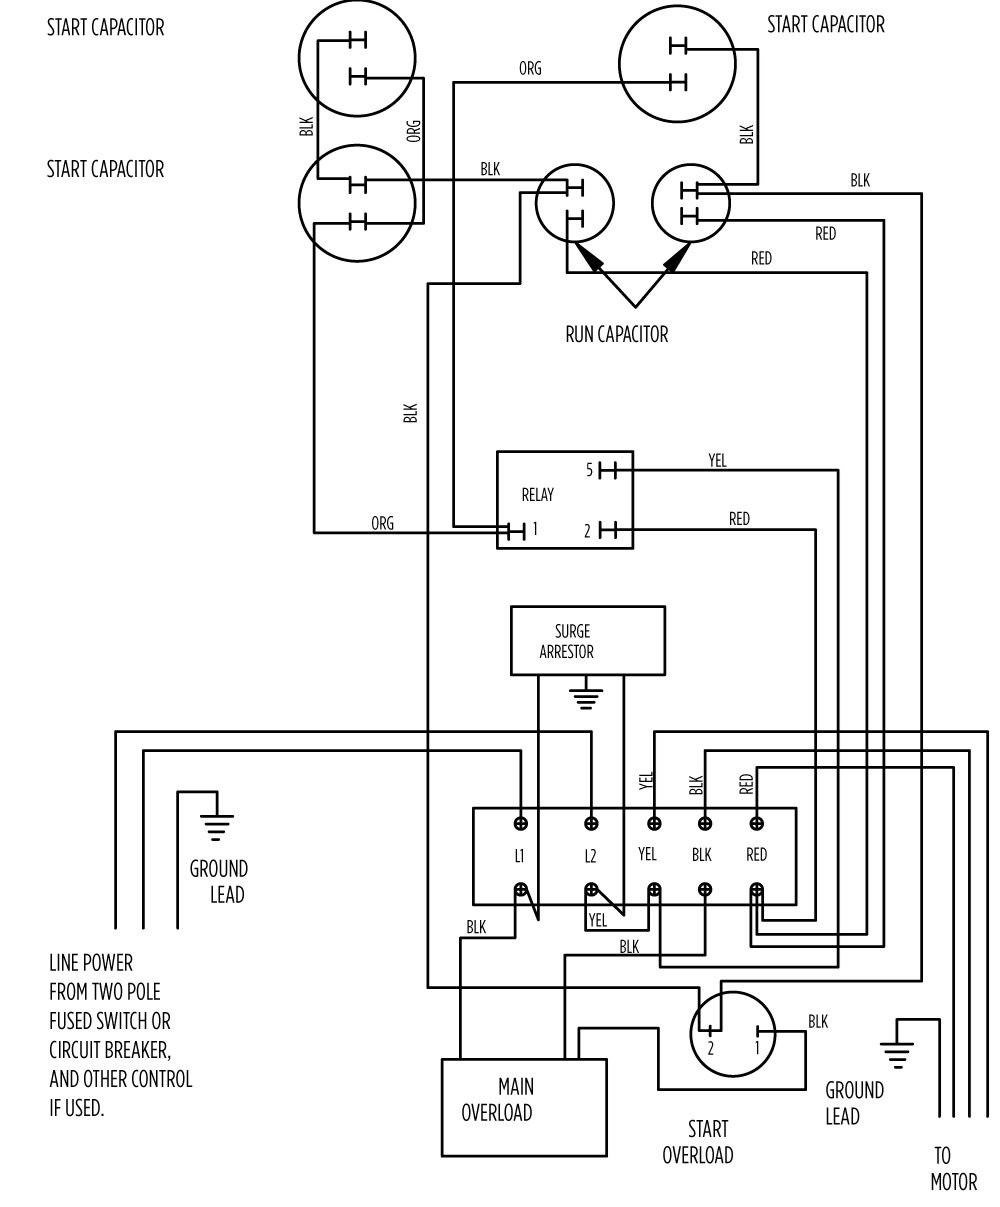 Motor Control Wiring Schematics List Of Schematic Circuit Diagram Directv Hd Aim Manual Page 57 Single Phase Motors And Controls Rh Franklinwater Com Software